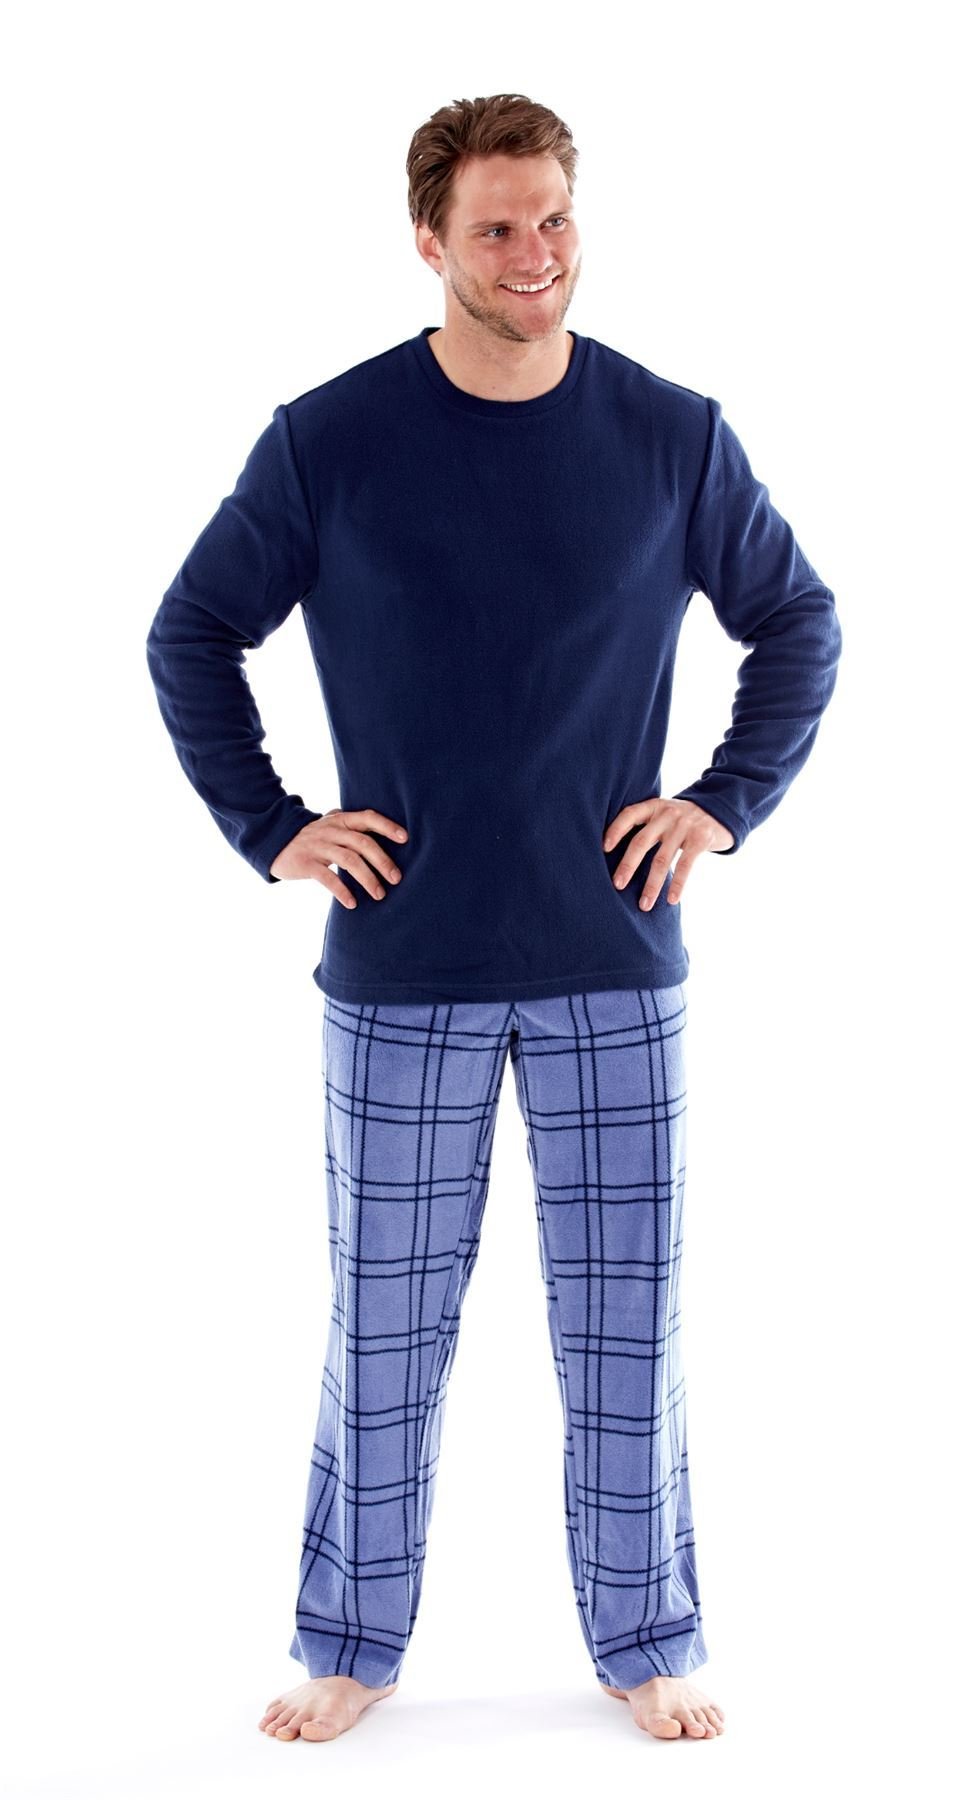 Buy men's pyjamas and nightwear online at Myer. Shop PJ sets, pyjamas pants and tees from top brands. Free shipping on orders $ or over.